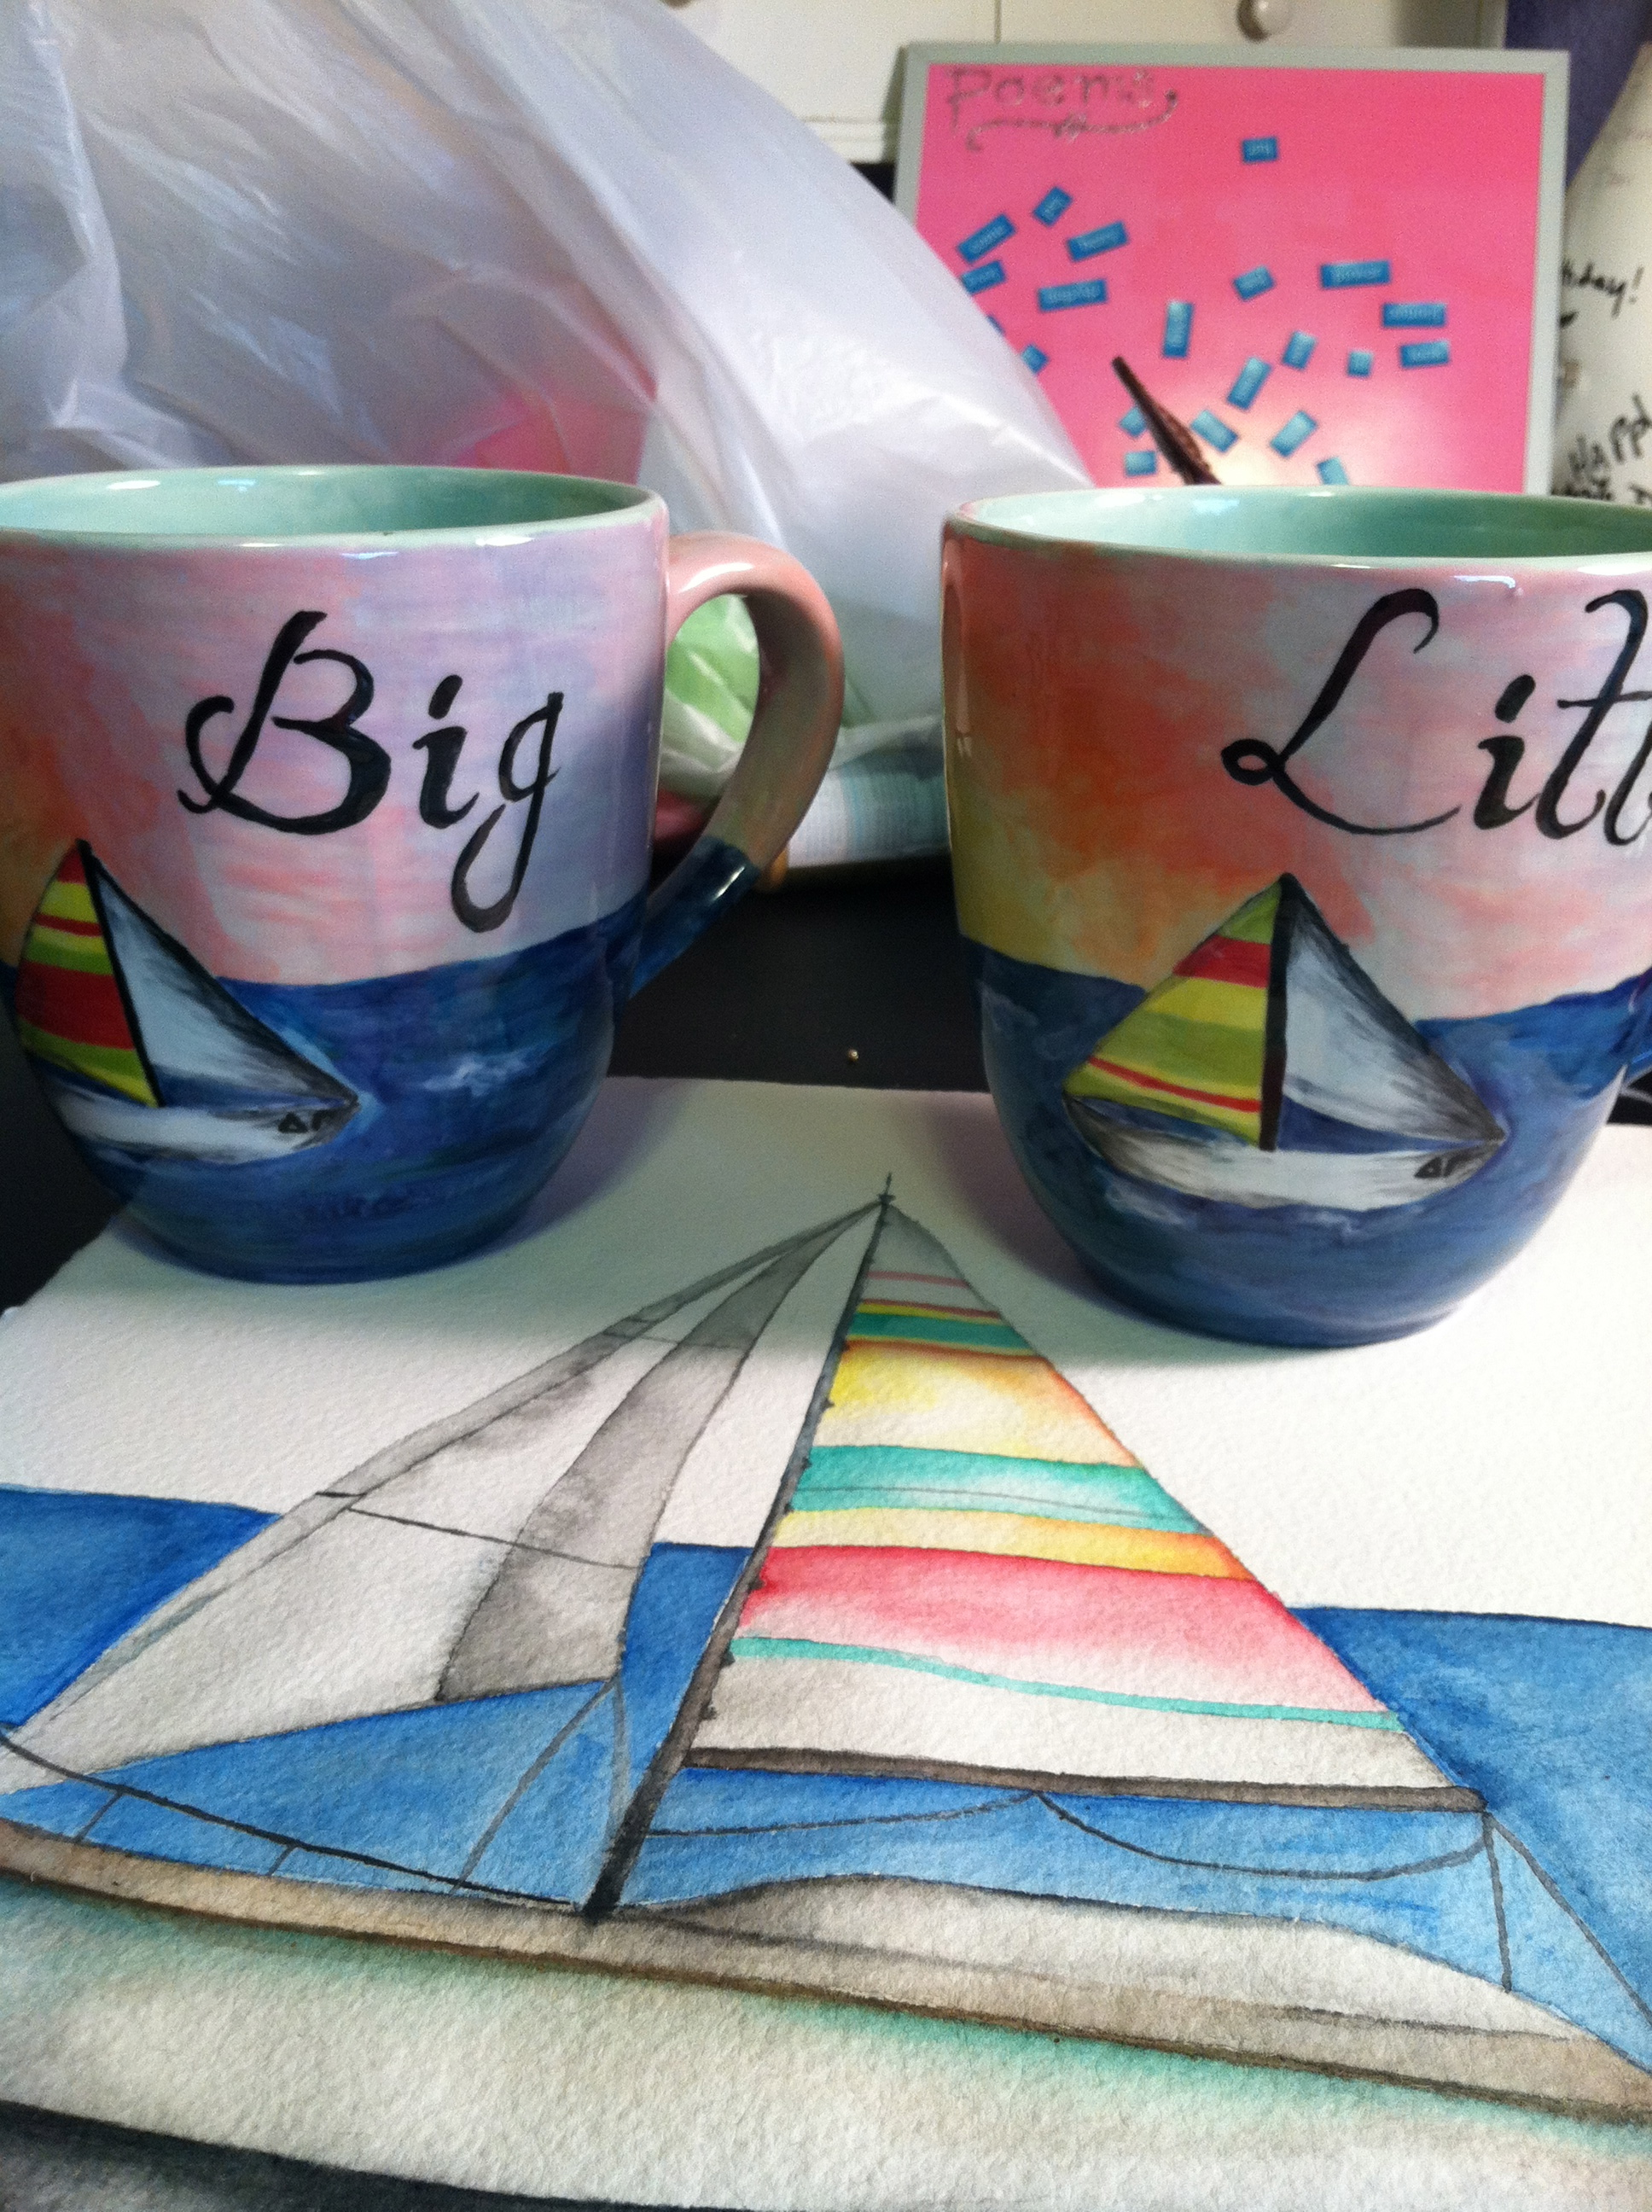 Matching nautical Big/Little mugs for all of our coffee dates. TSM.